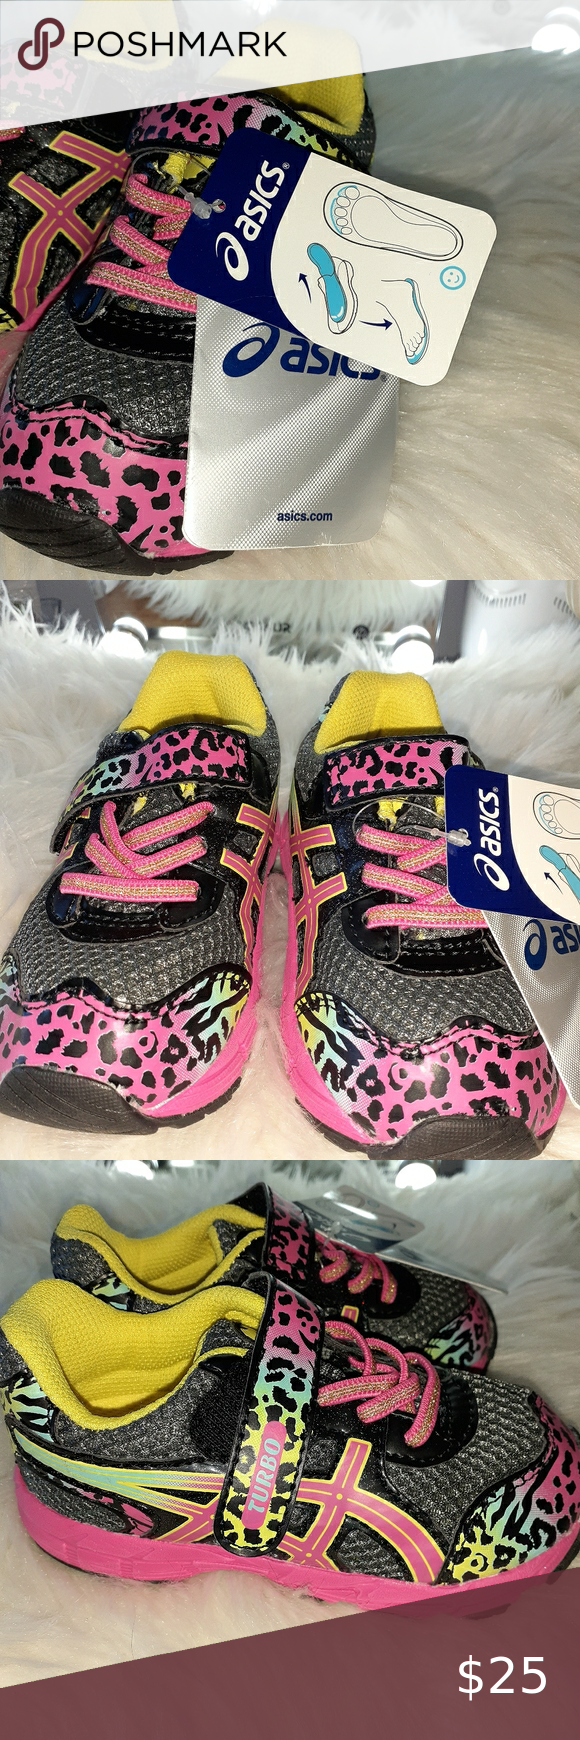 NWT Asics TURBO Little Girl's Shoes in